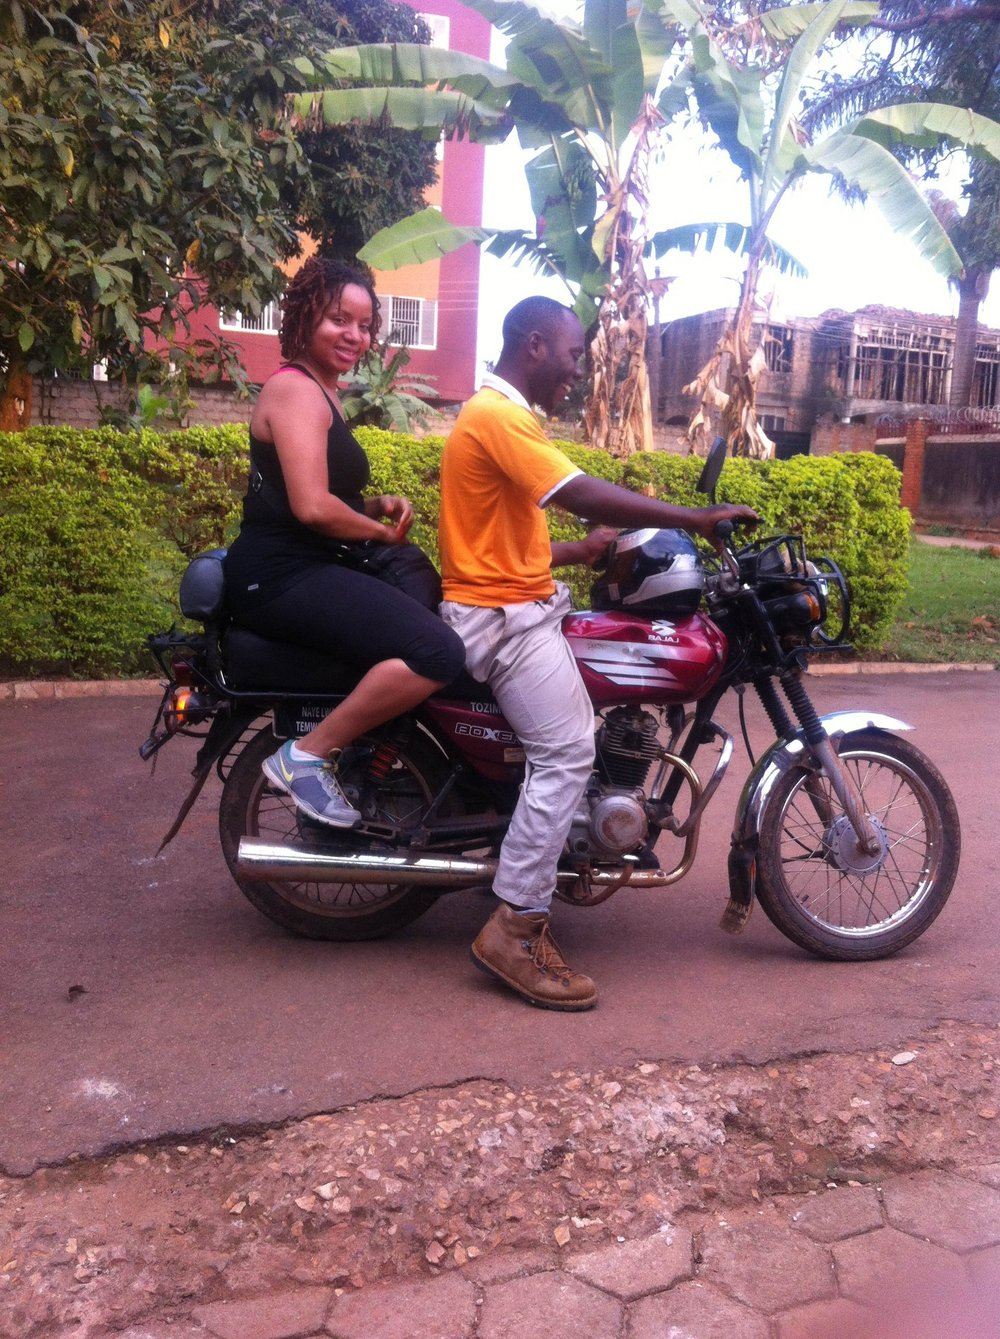 Kristen getting ready to ride on a Kampala motorbike.